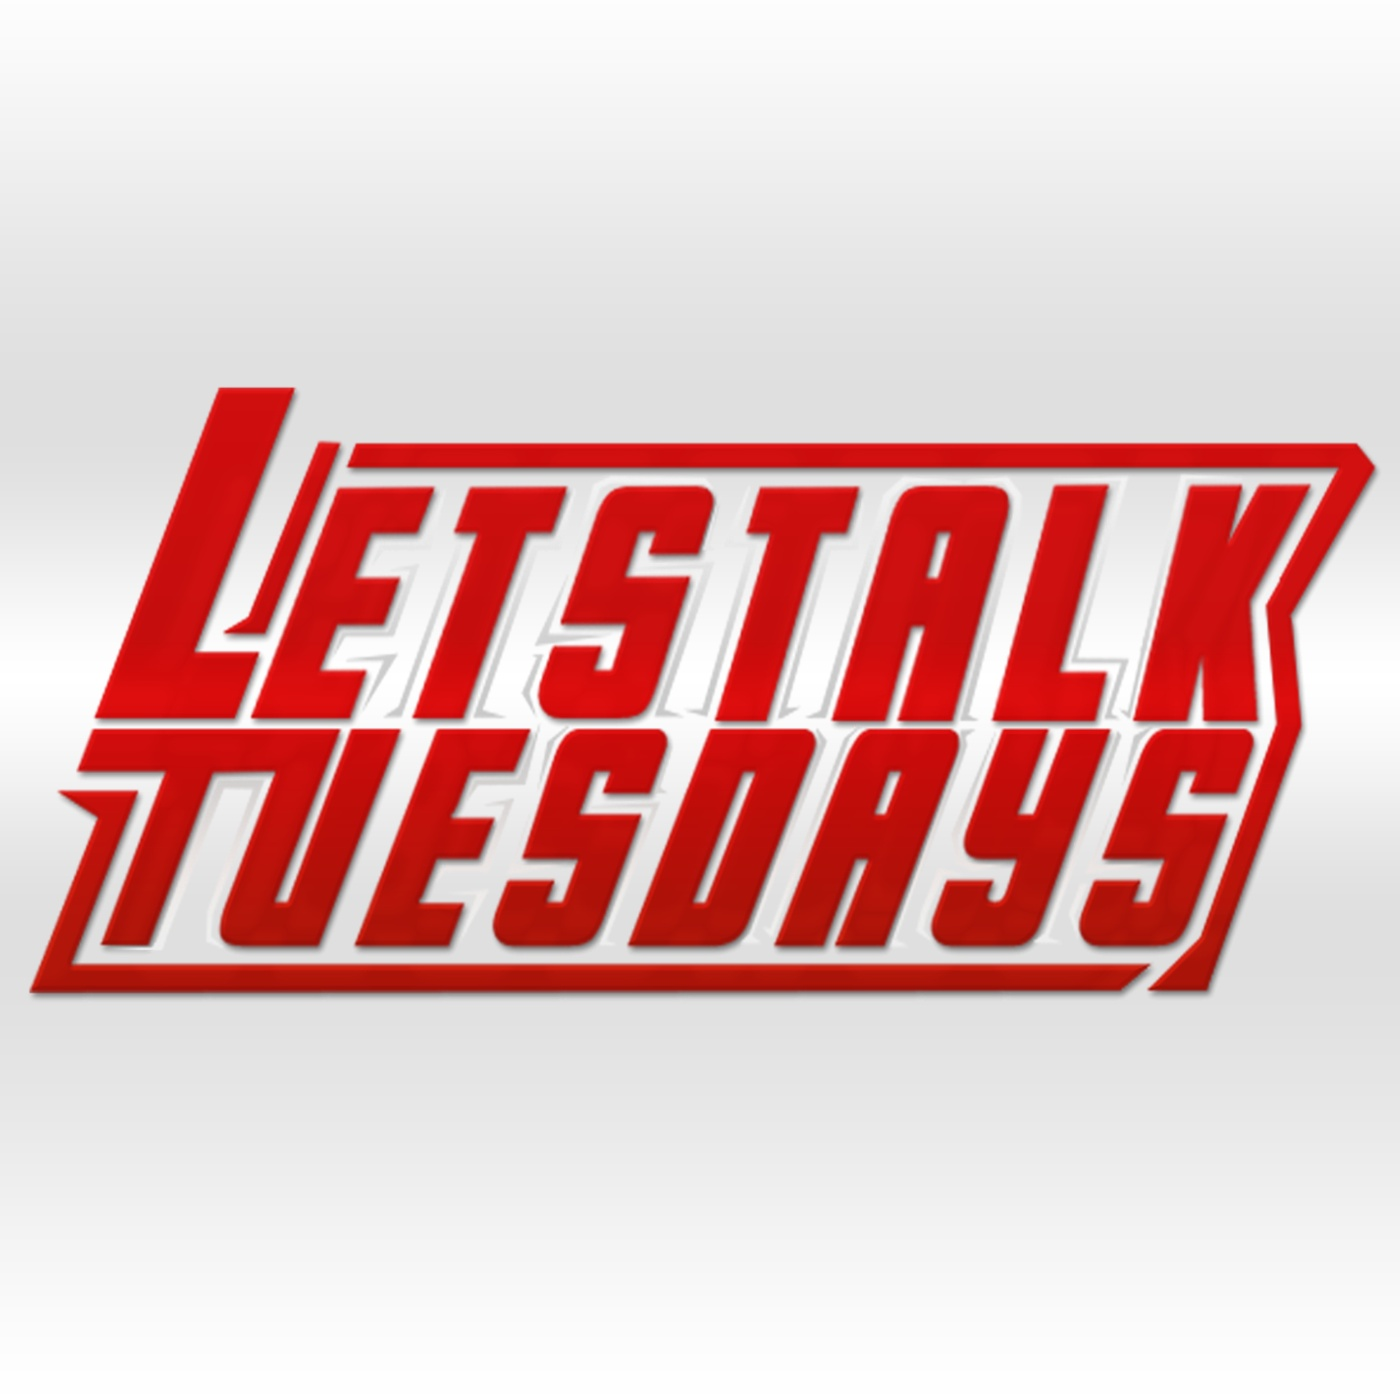 Lets Talk Tuesdays